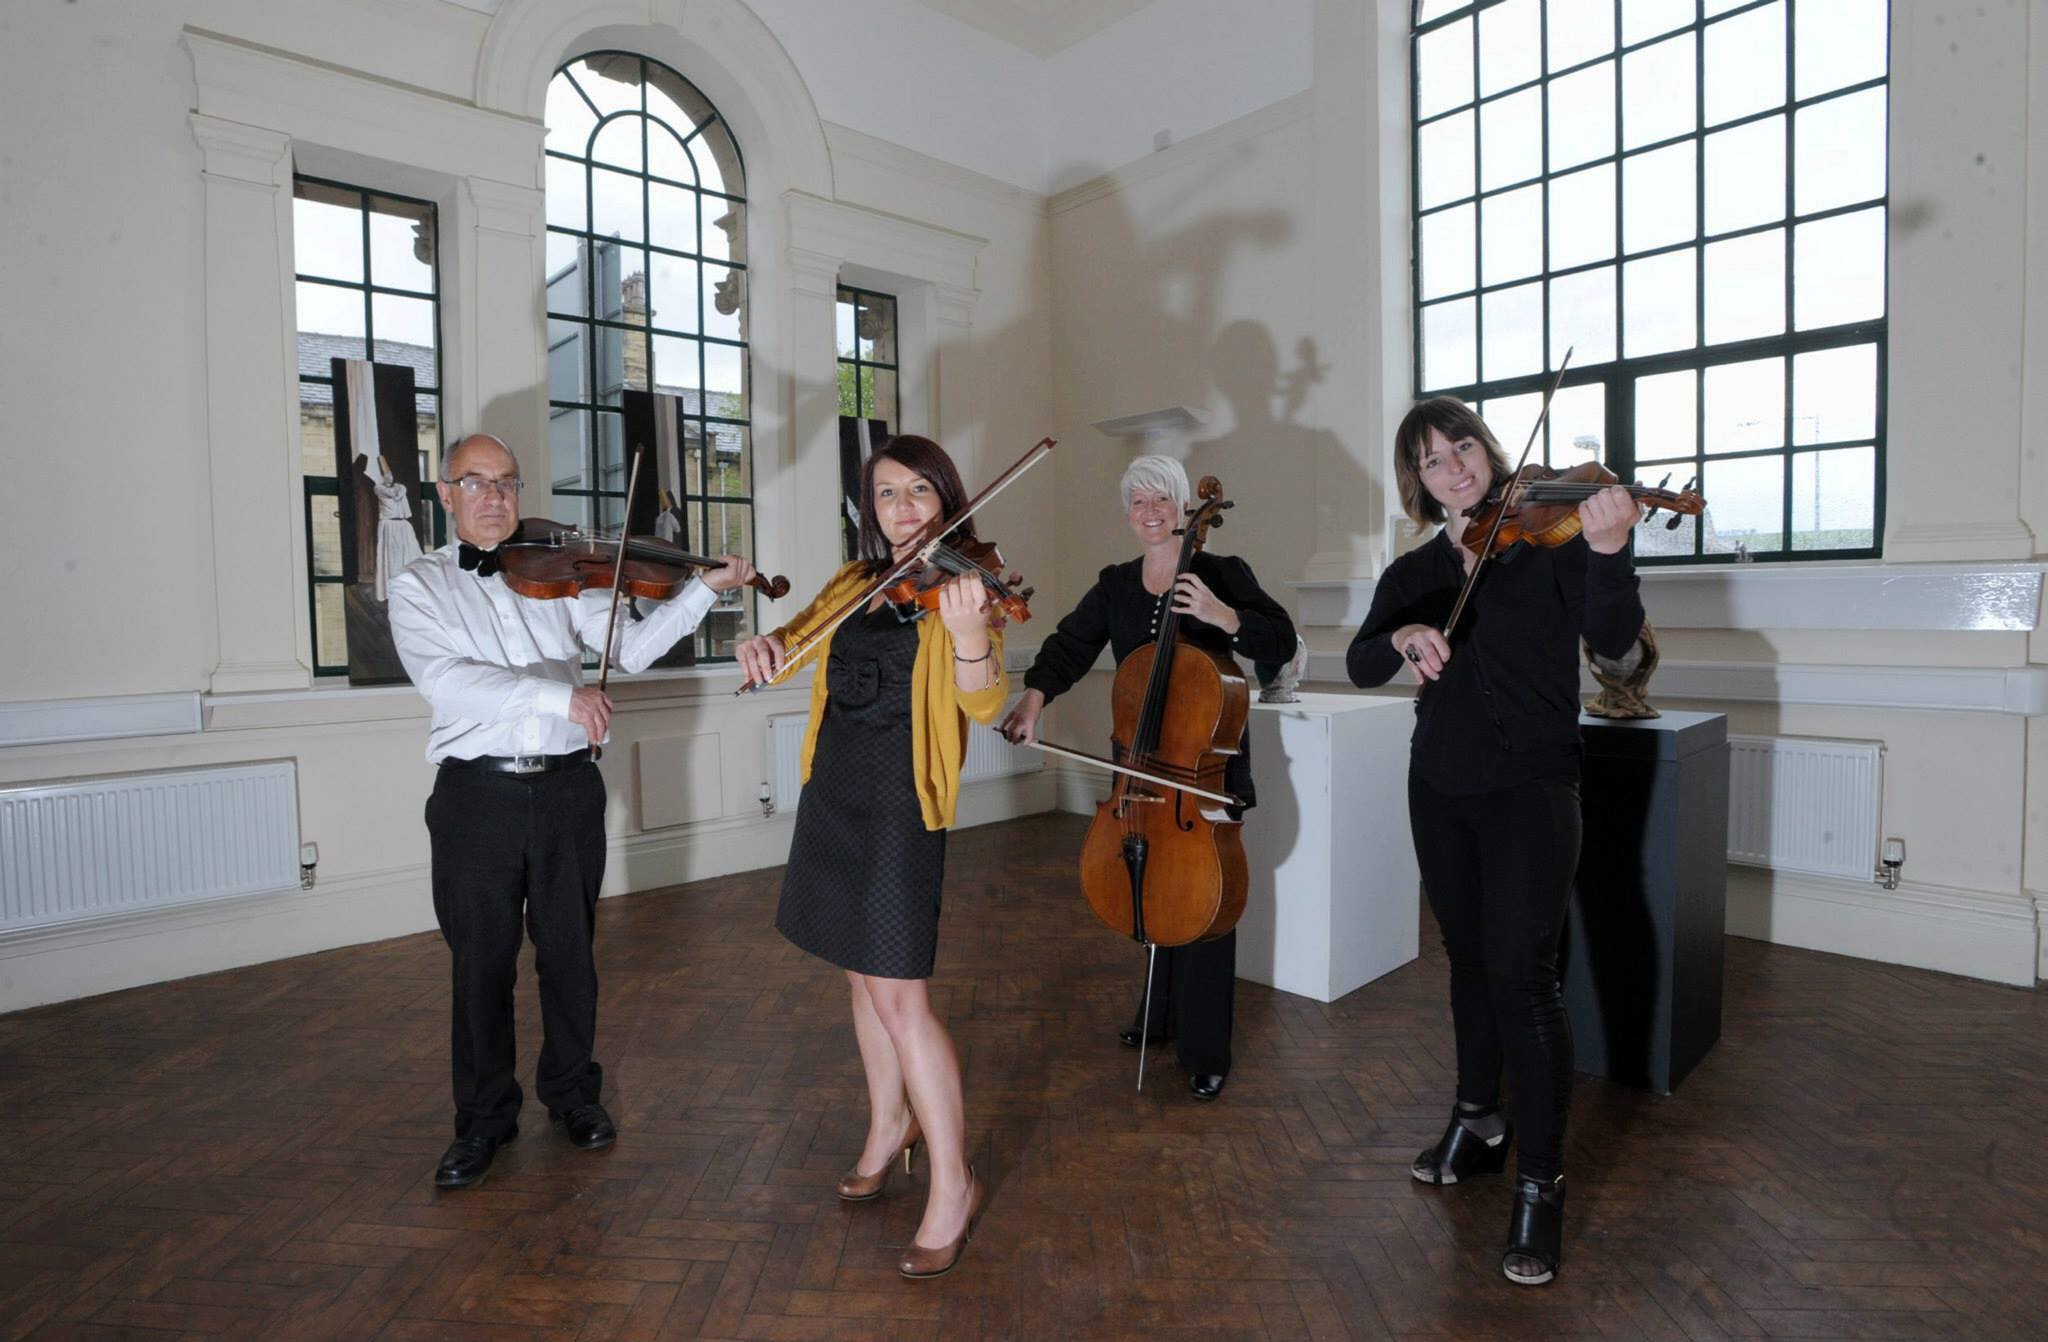 The Trawden String Quartet